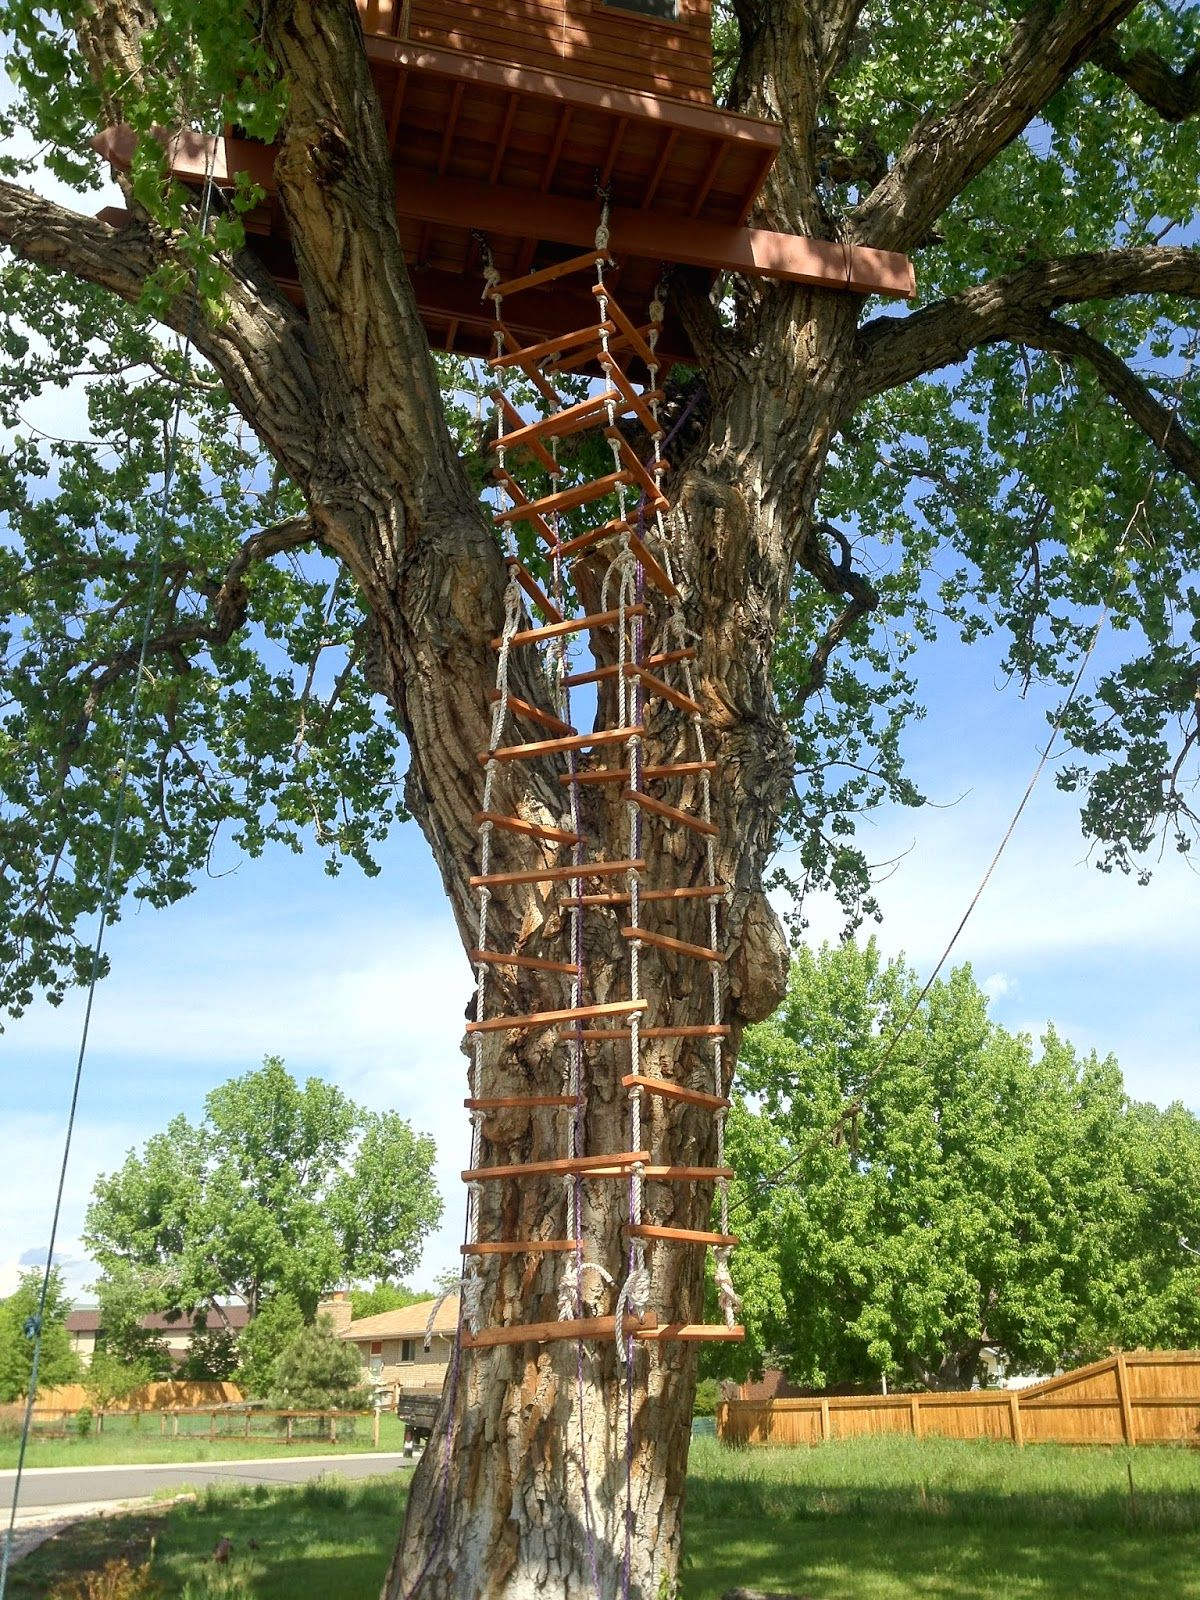 Treehouse Rope Ladder 4 Sided Tree House Tree House Designs